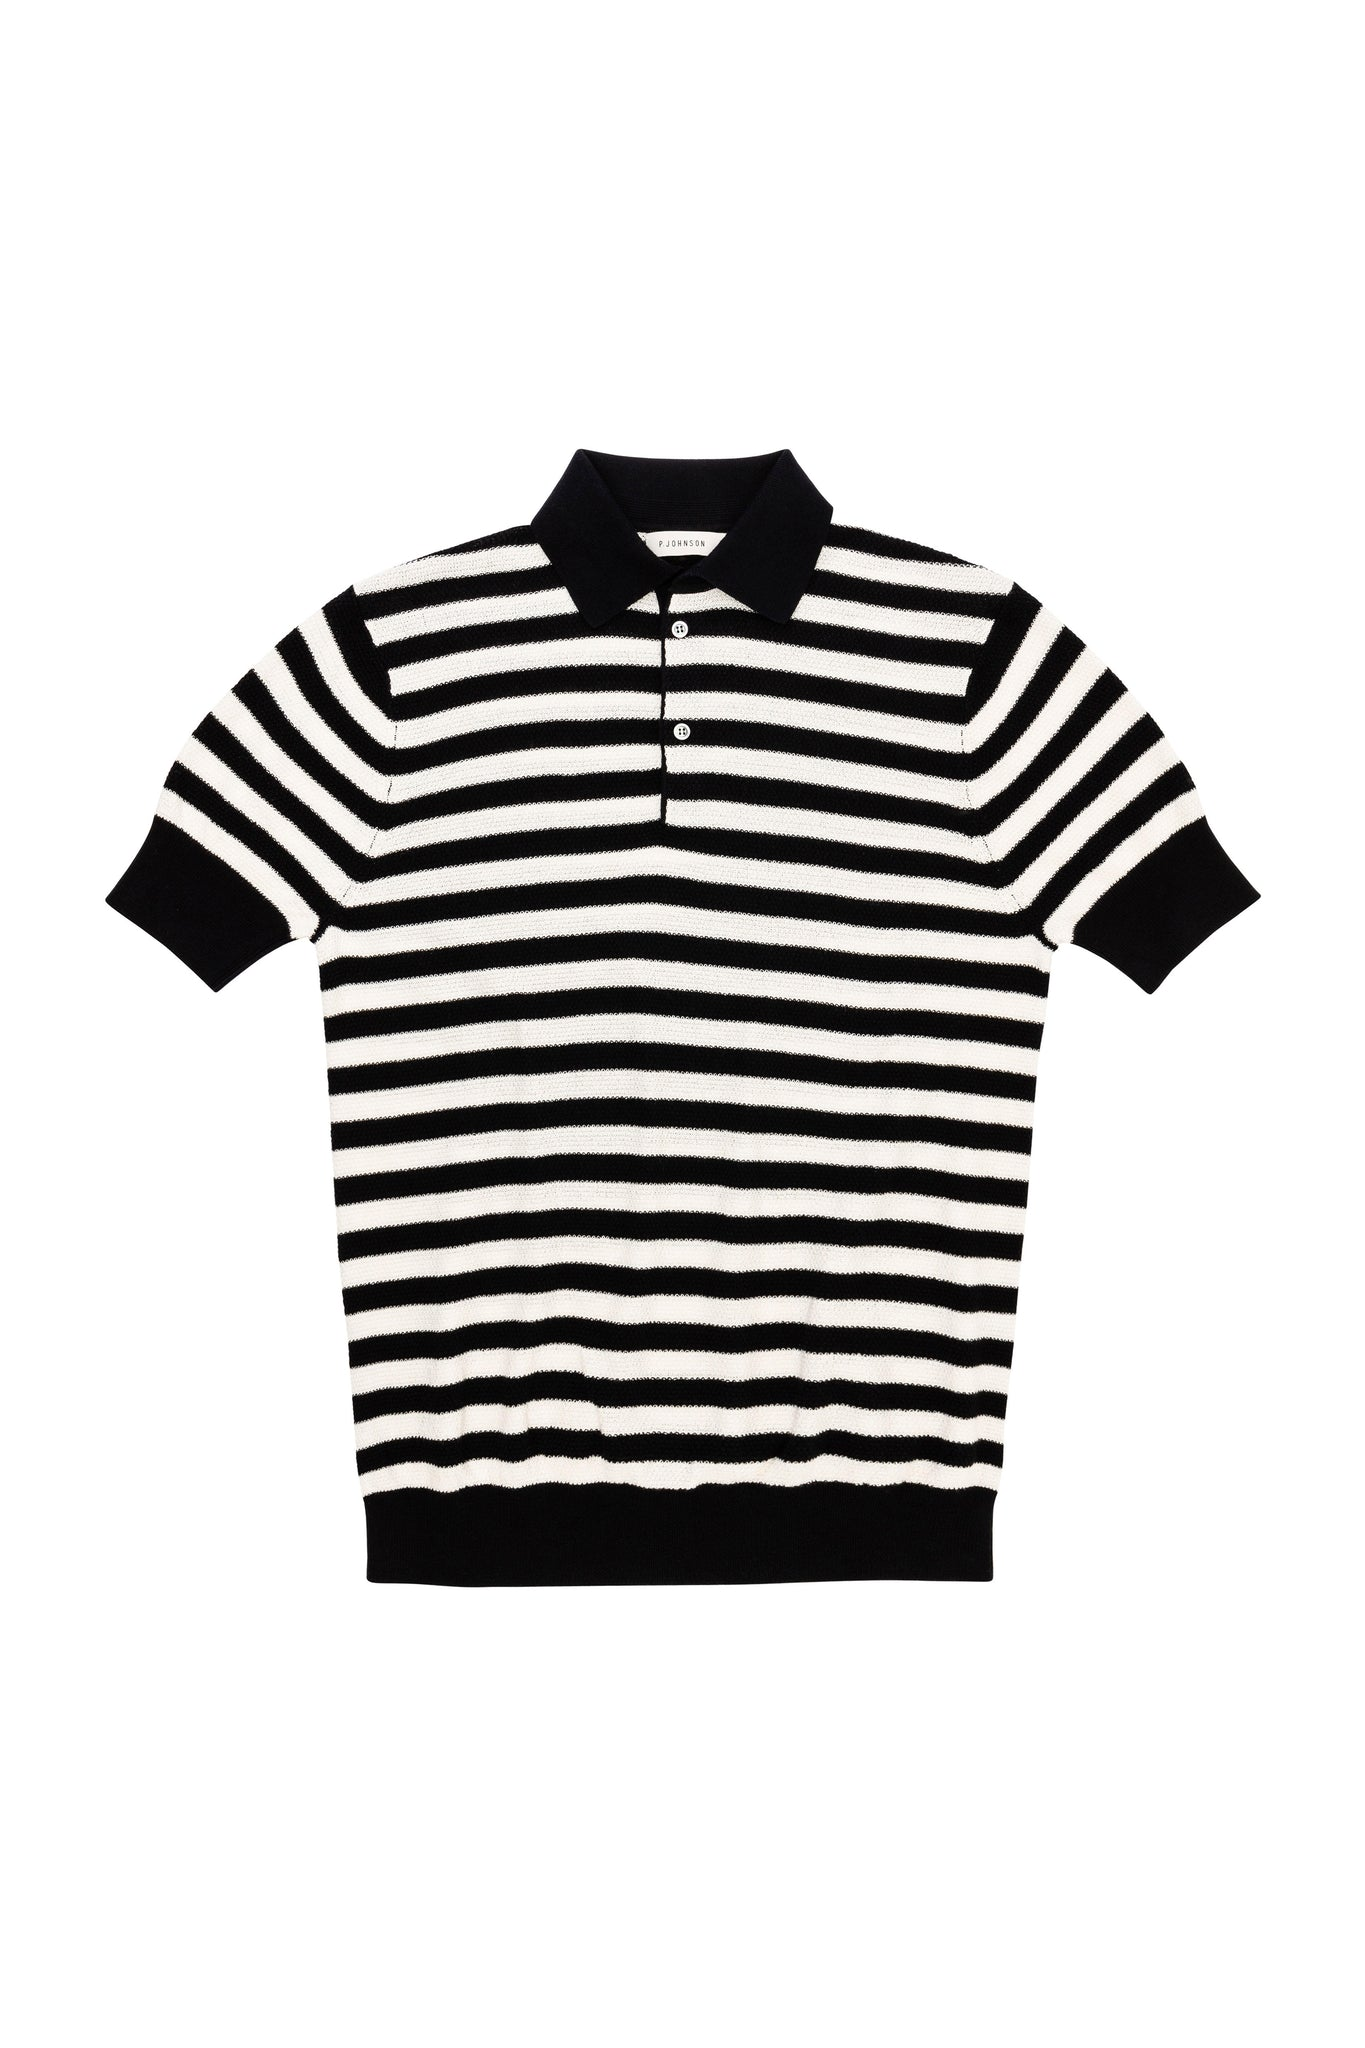 Navy and White Stripe Short Sleeve Honeycomb Knit Polo